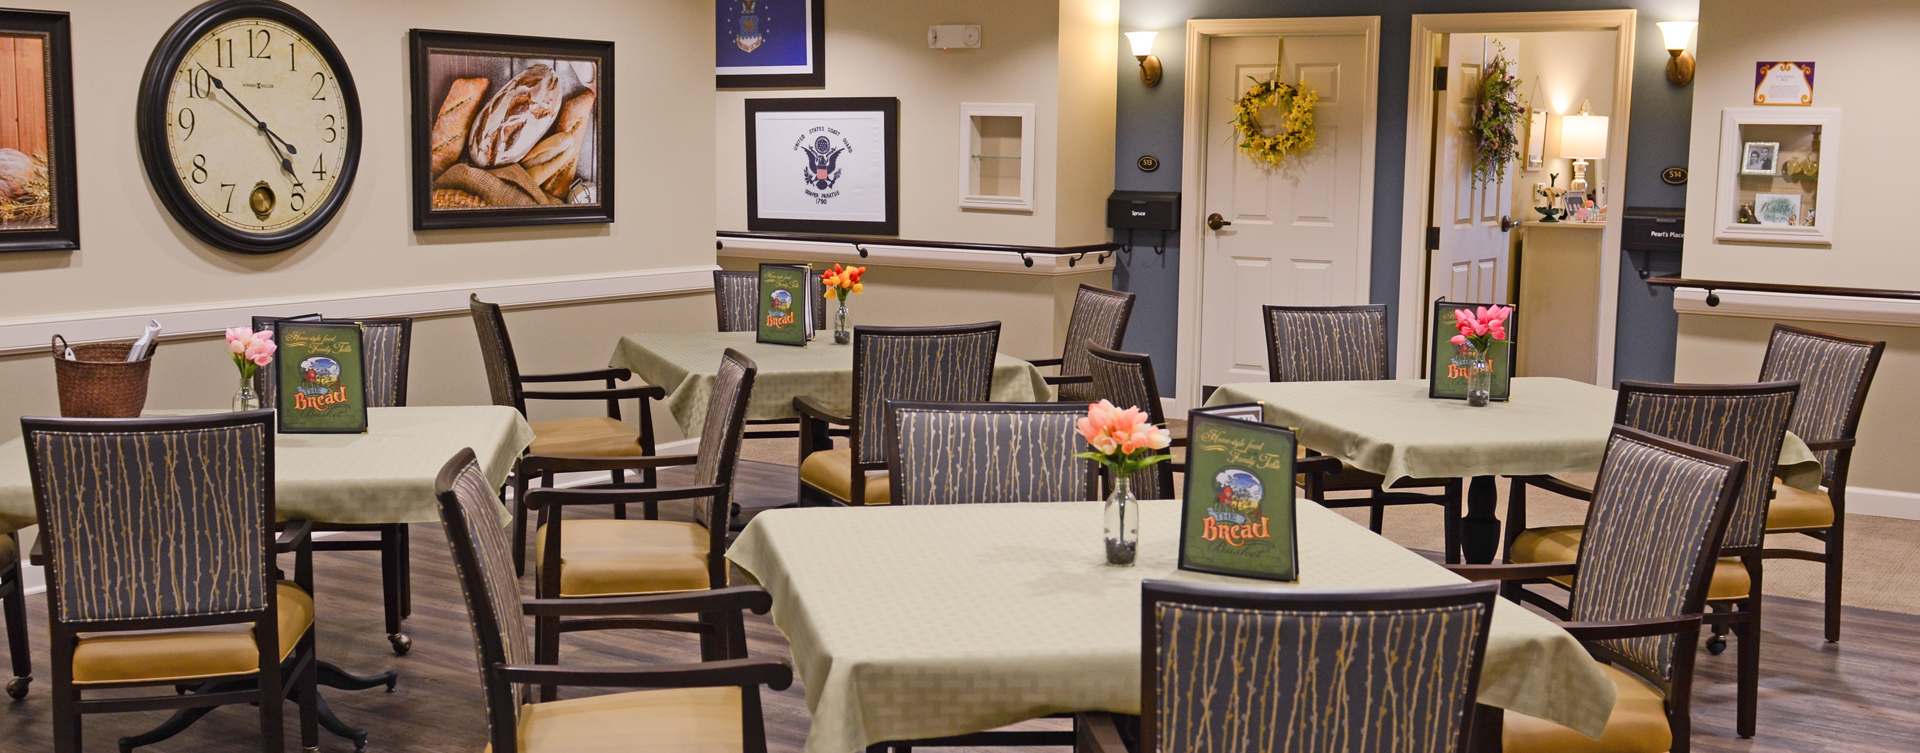 Residents with dementia receive additional assistance with meals in our Mary B's dining room at Bickford of Aurora